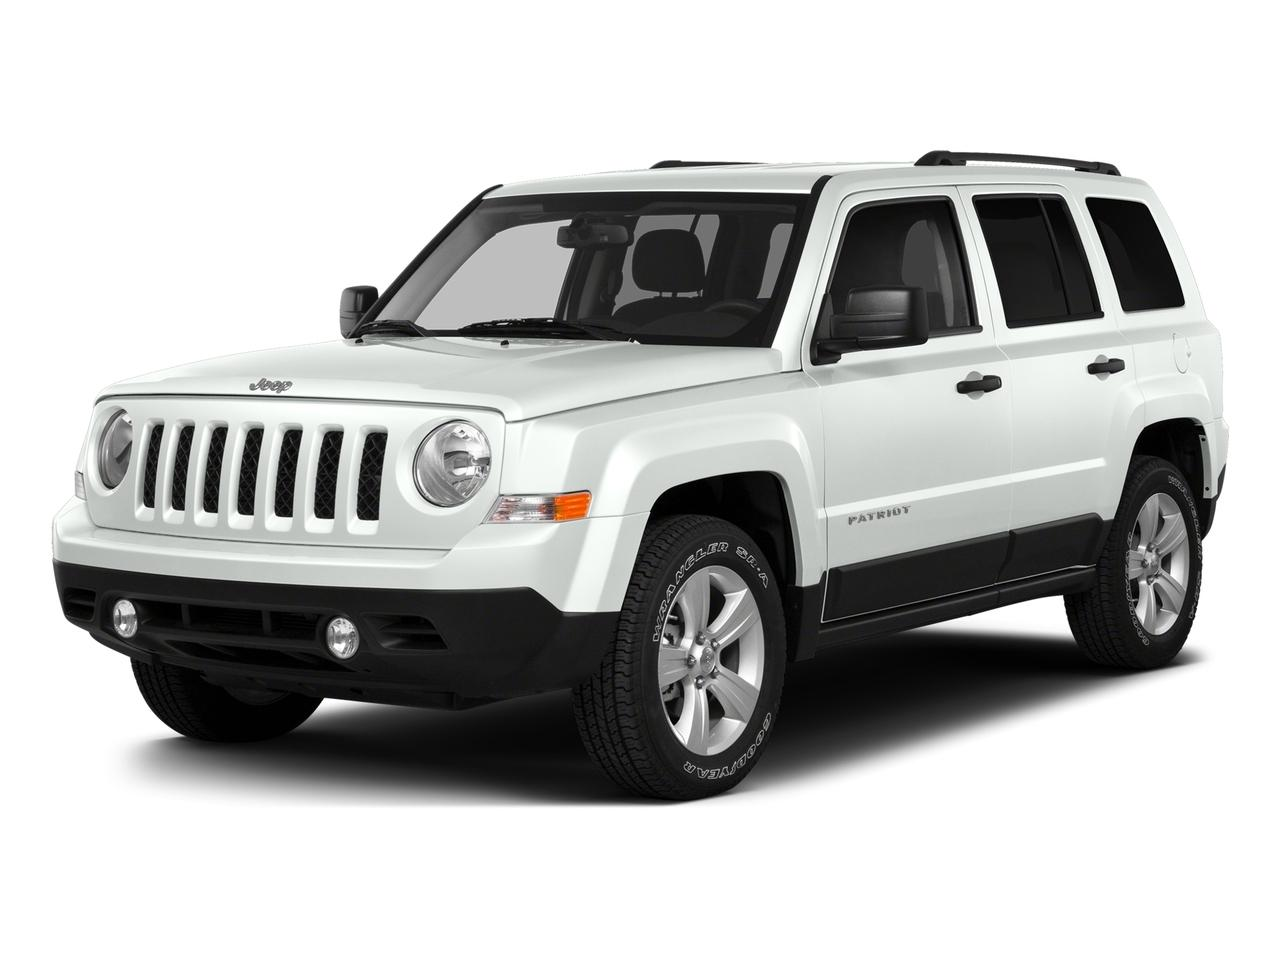 2016 Jeep Patriot Vehicle Photo in Quakertown, PA 18951